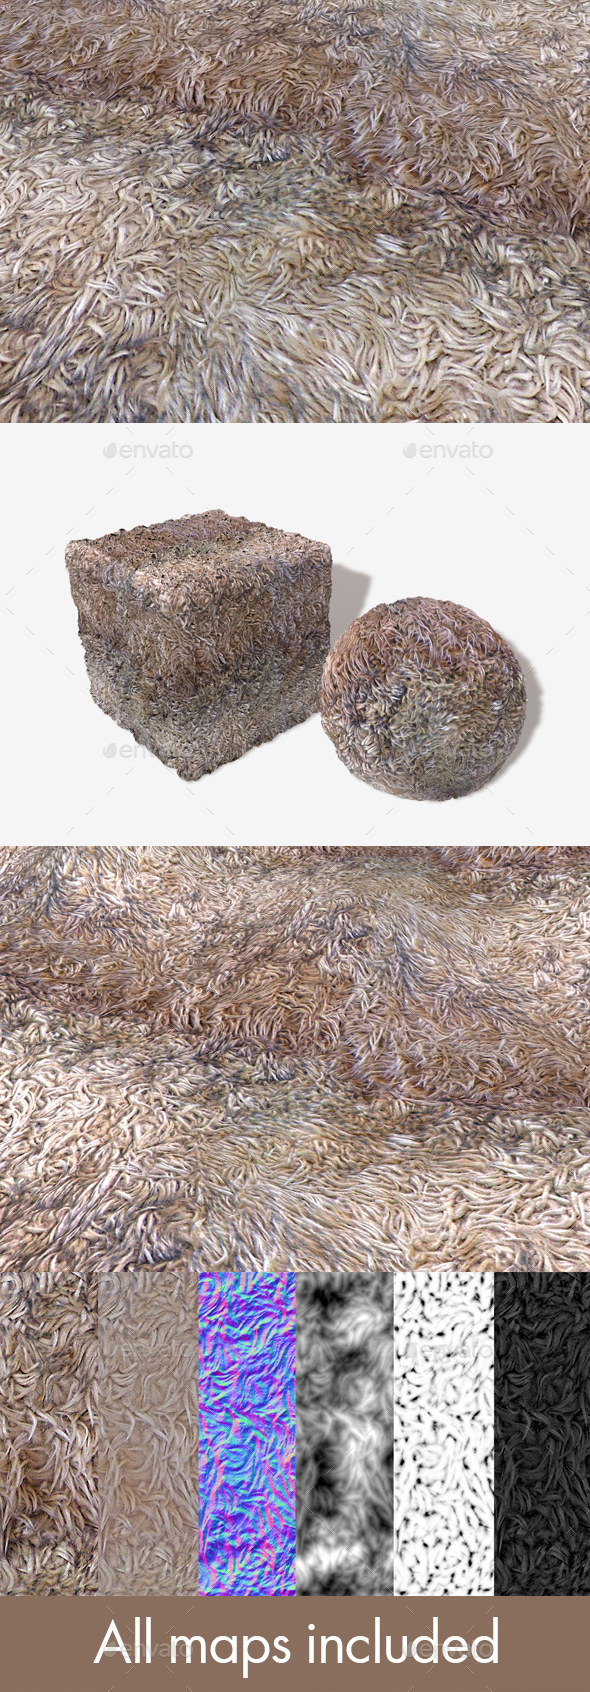 Faux Fur Rug Seamless Texture - 3DOcean Item for Sale